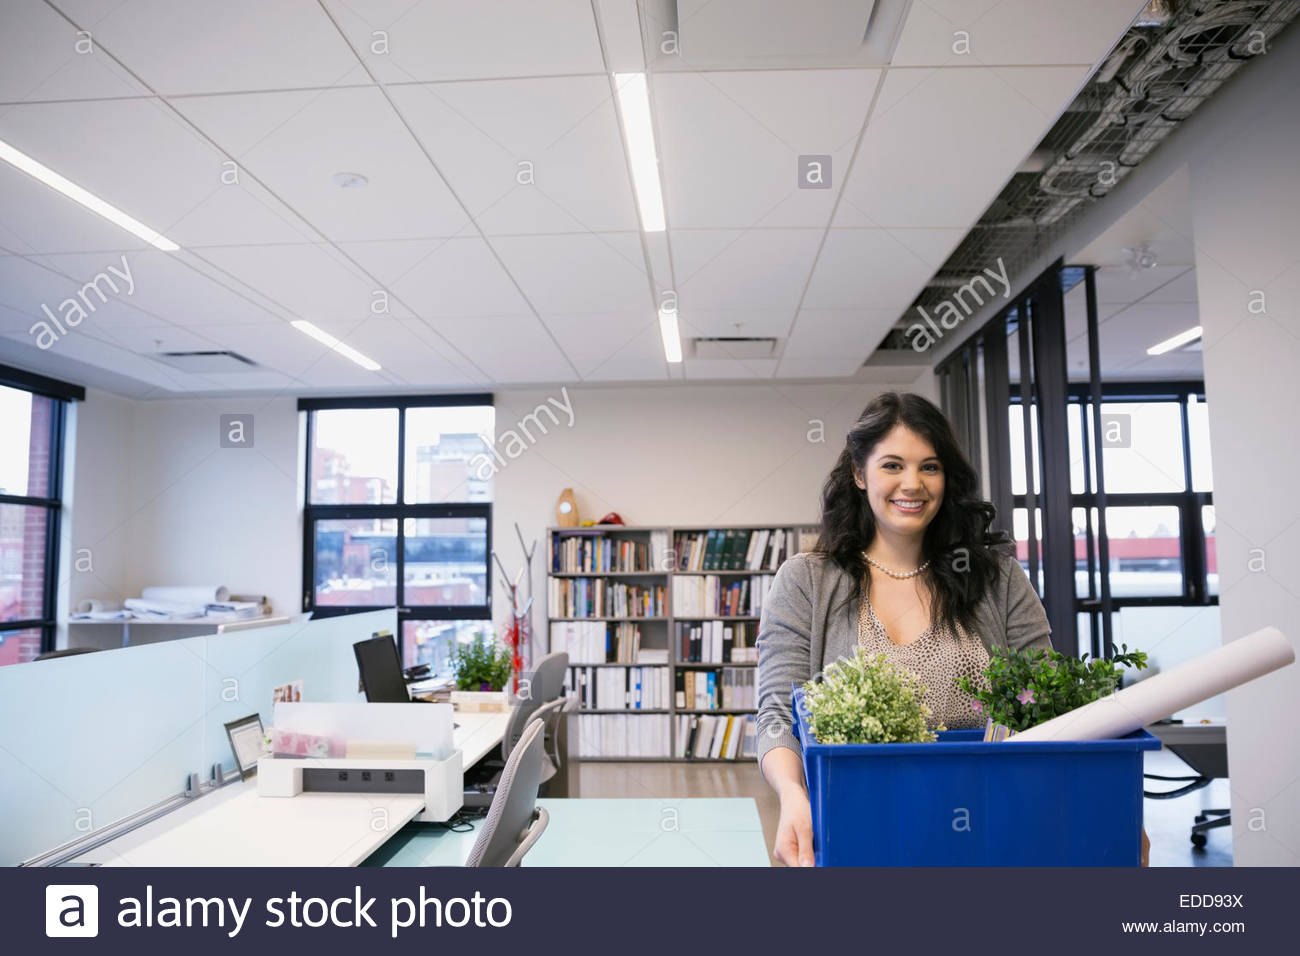 Portrait of smiling businesswoman carrying belongings in office Stock Photo